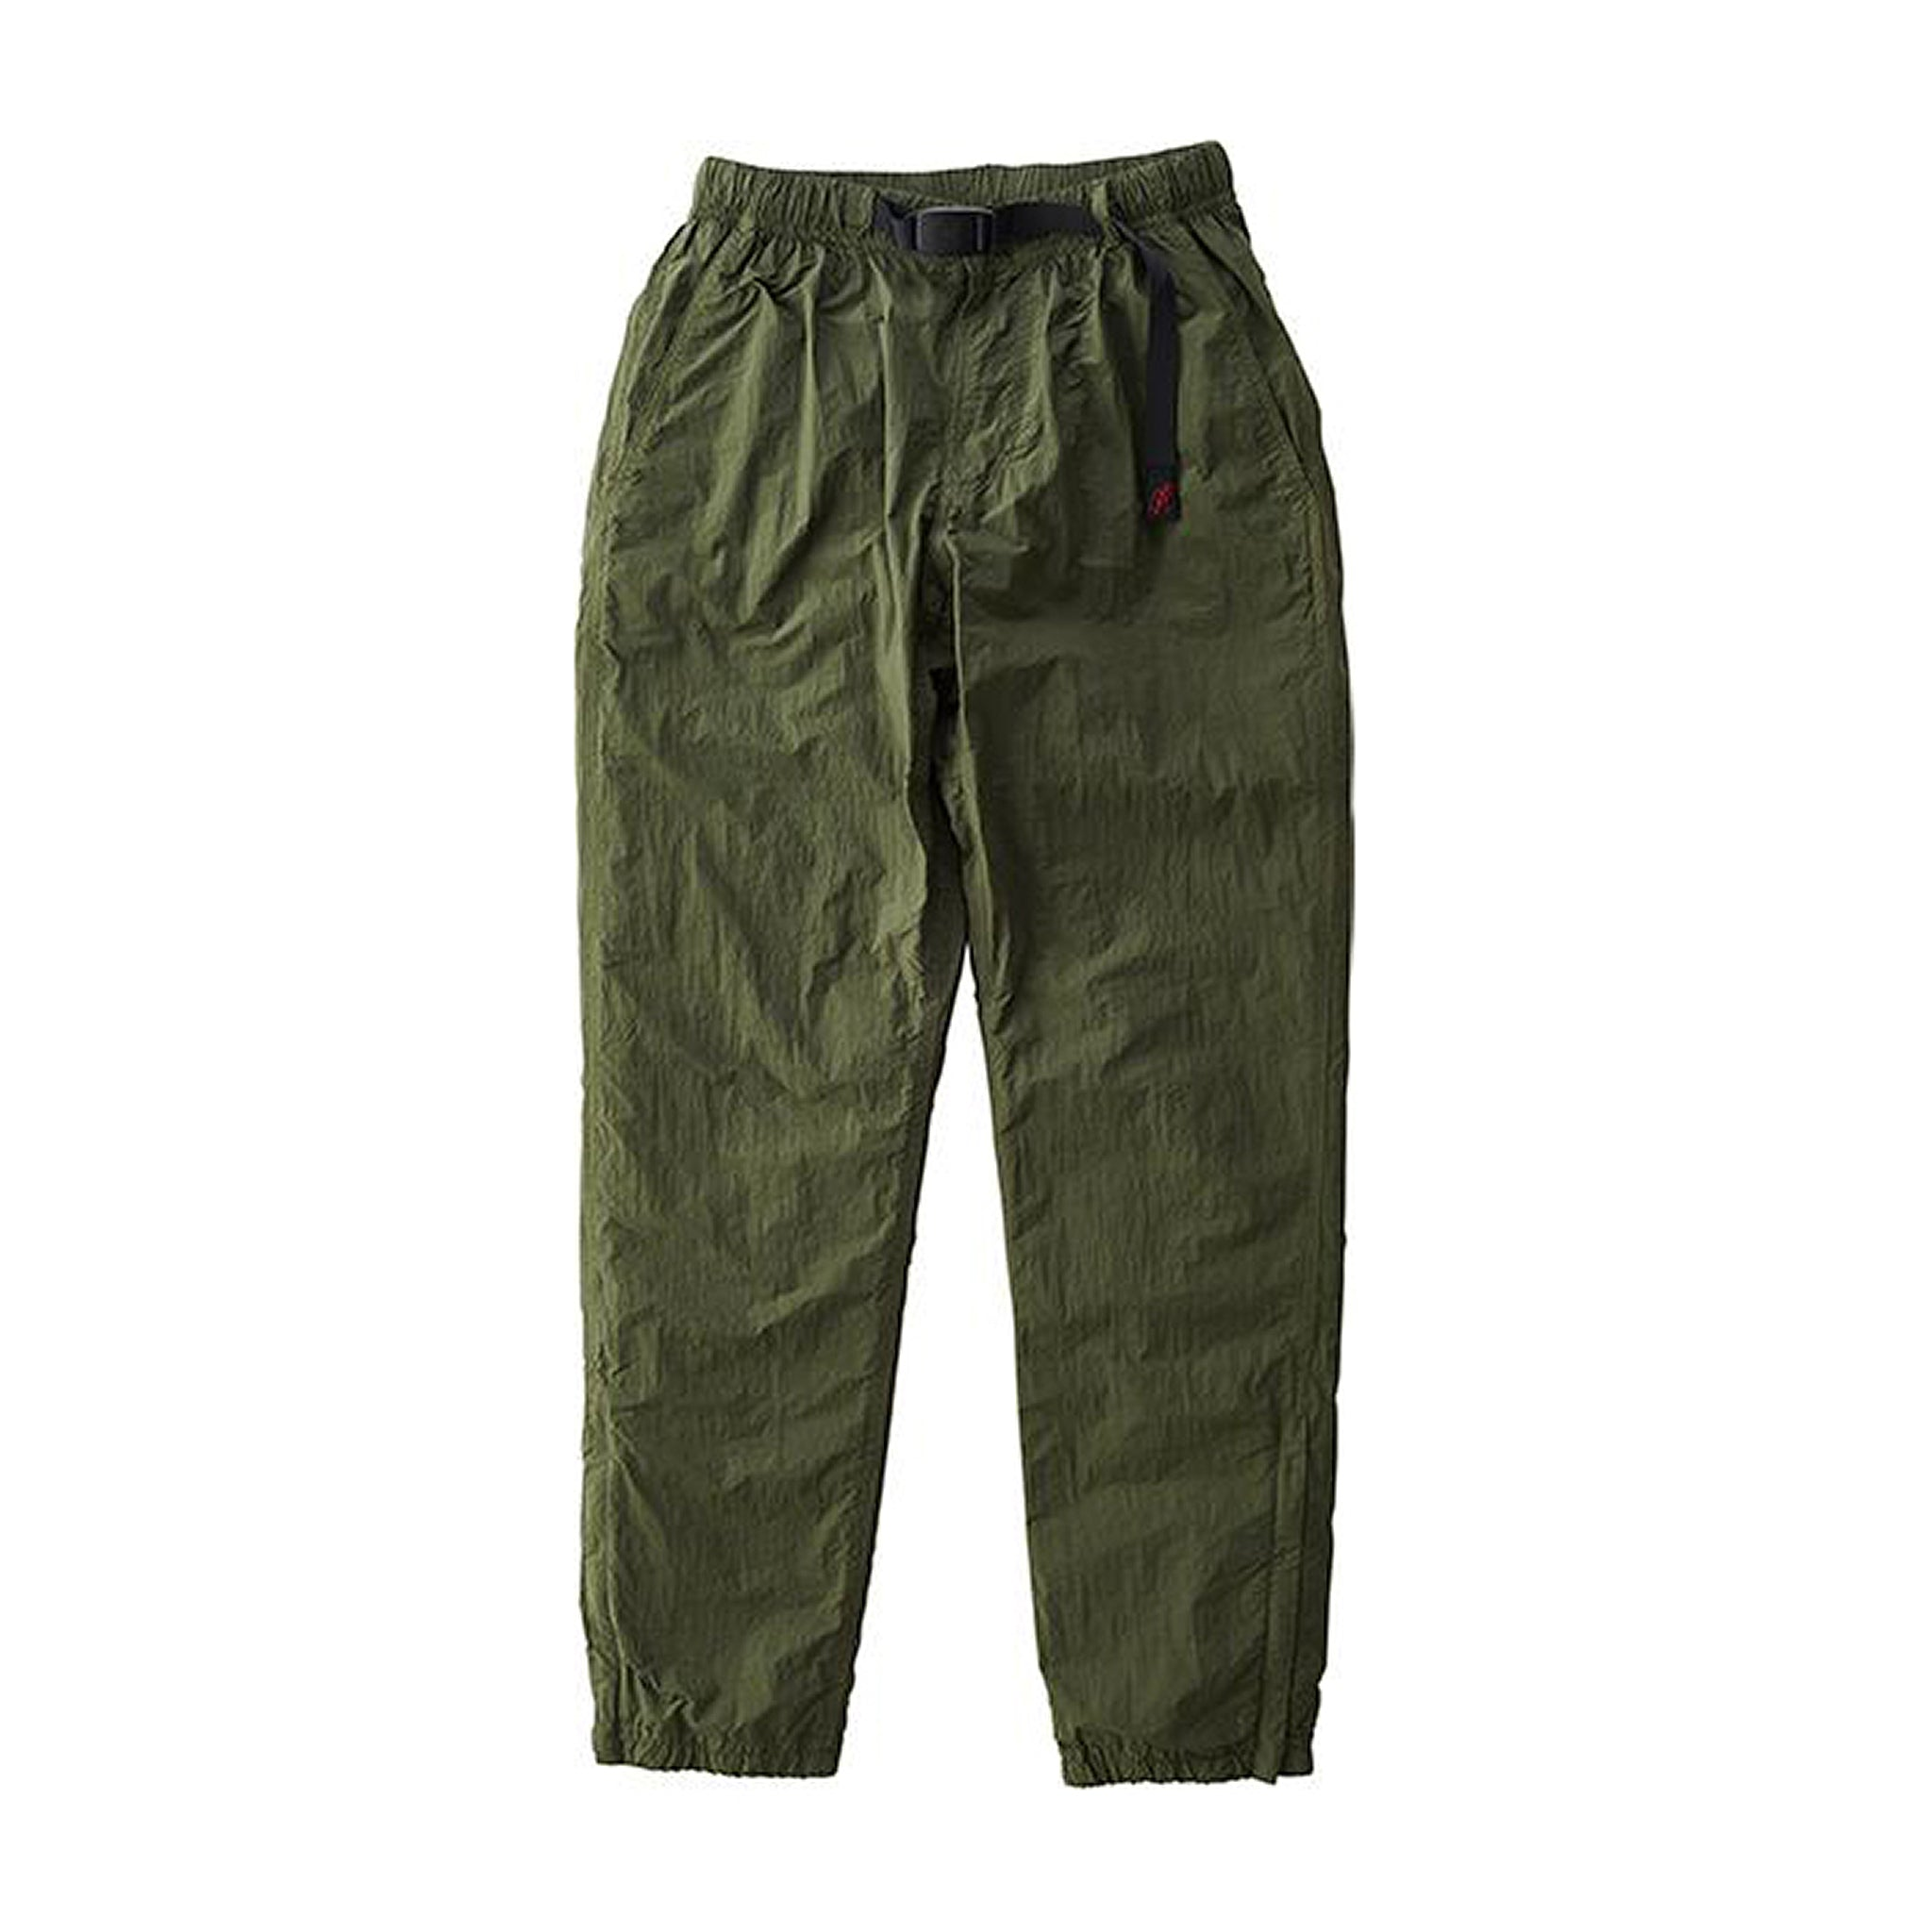 Gramicci Packable Truck Pants Olive